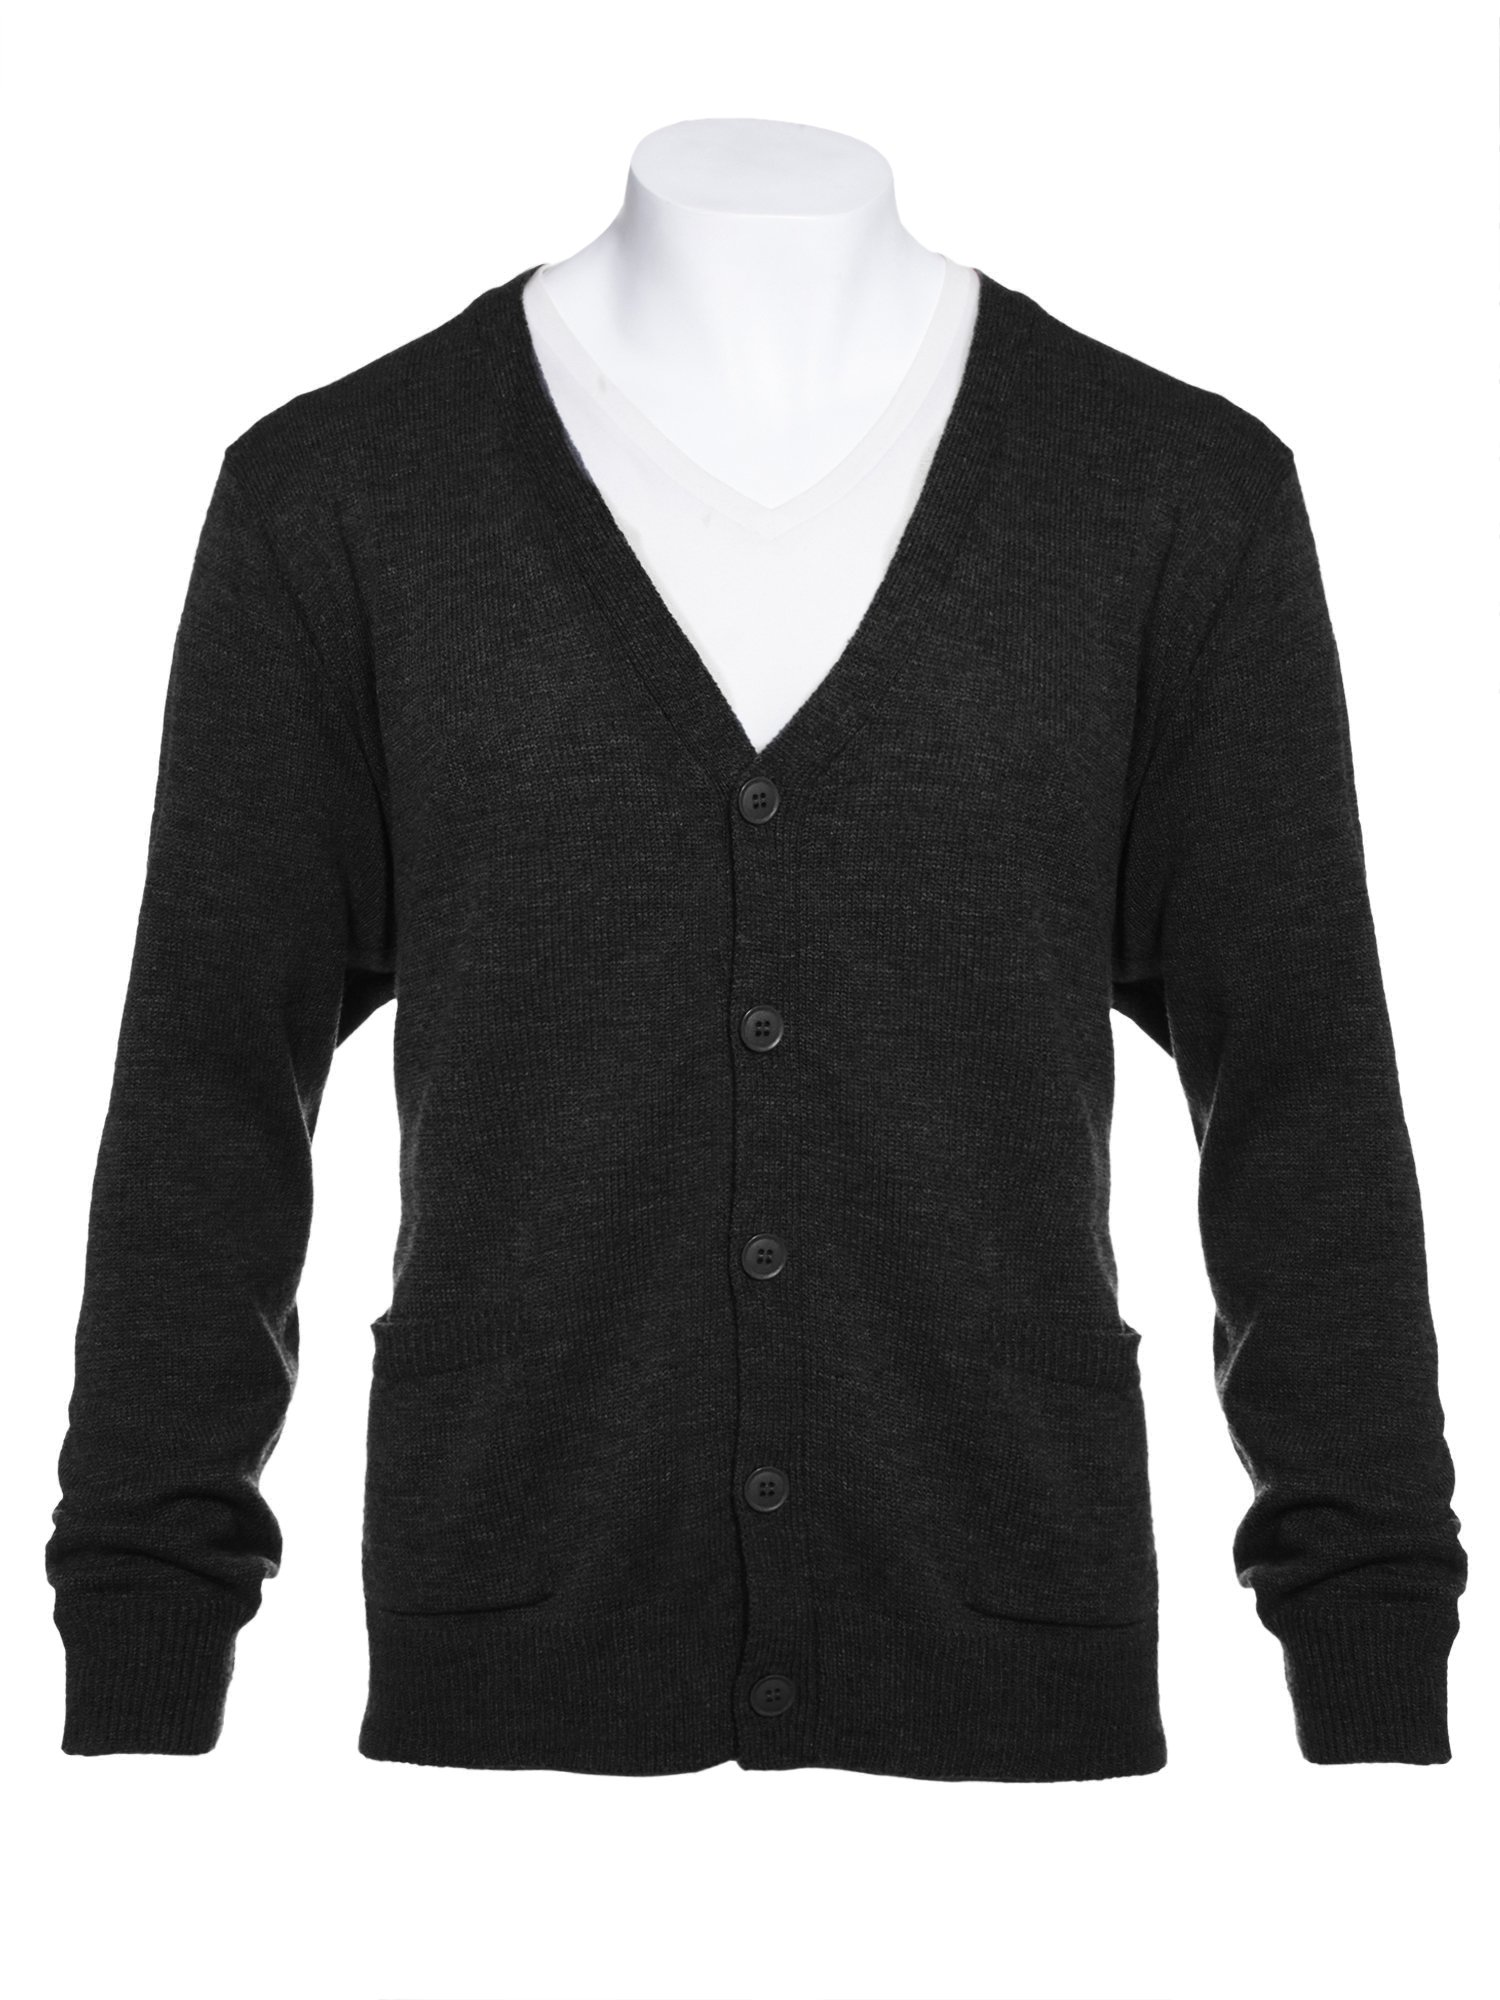 Knit Minded Mens Big and Tall Flat Knit Long Sleeve V-Neck Two Pocket Cardigan Sweater Black 1X